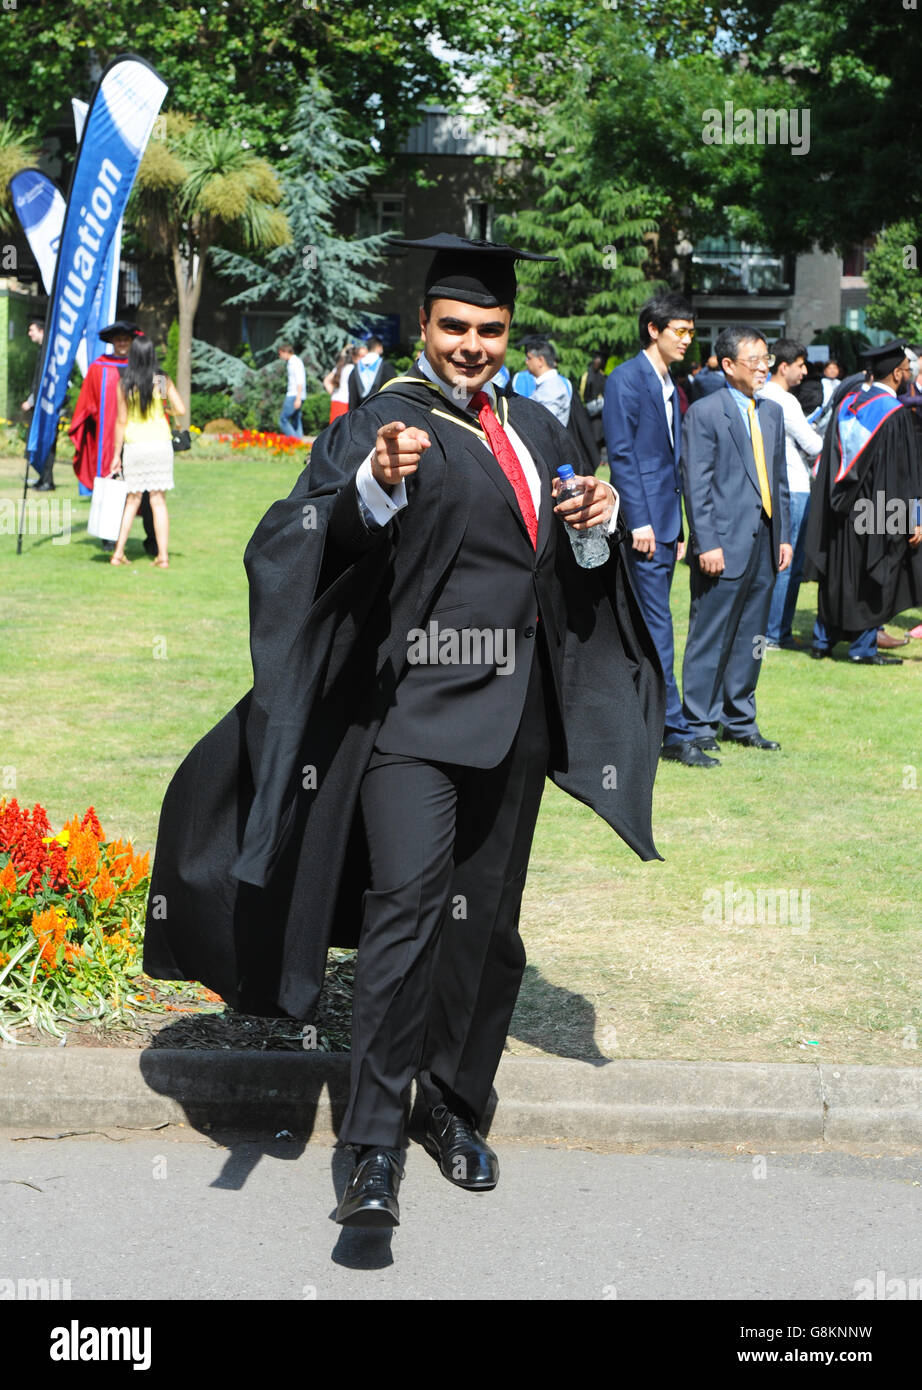 One male student graduate in full gown with hat expressing enormous joy on graduation day at Queen Mary London University. - Stock Image